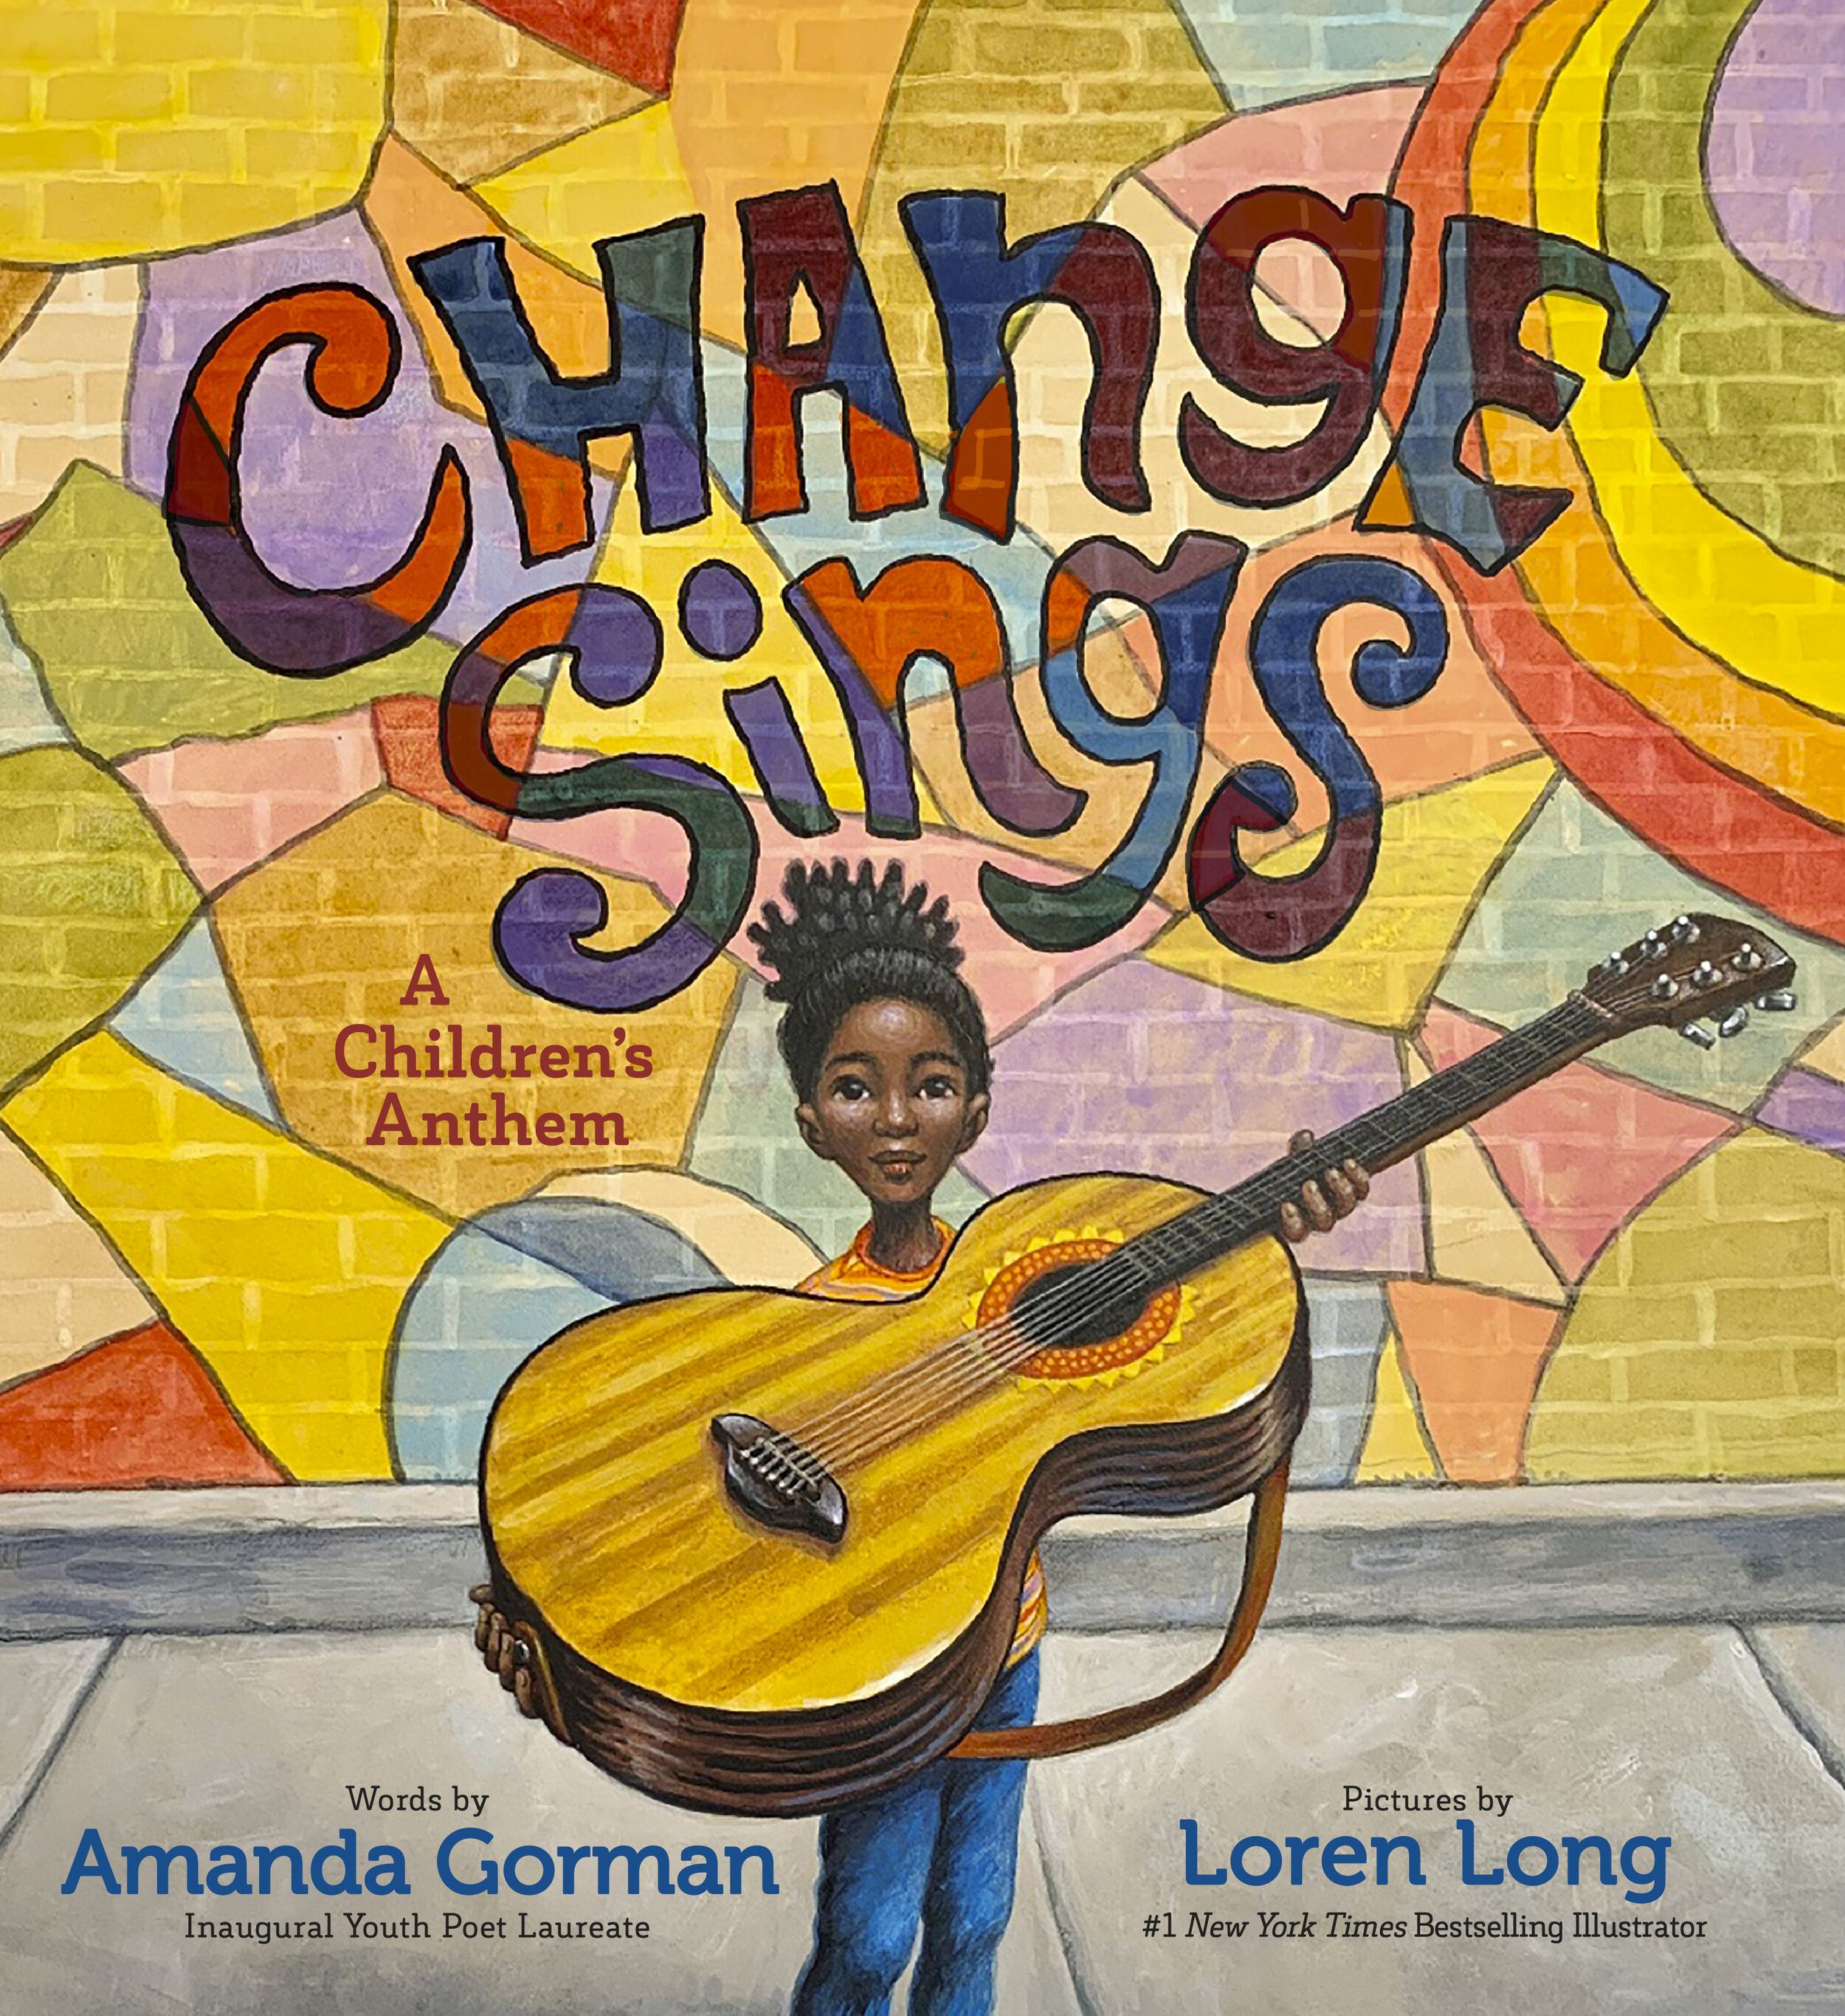 Change Sings  is brought to life by #1  New York Times  bestselling illustrator Loren Long, the artist behind Barack Obama's children's book  Of Thee I Sing: A Letter to My Daughters . Written as a children's anthem, Gorman's book reminds the newest generation that they have the power to shape the word with their actions and voices.